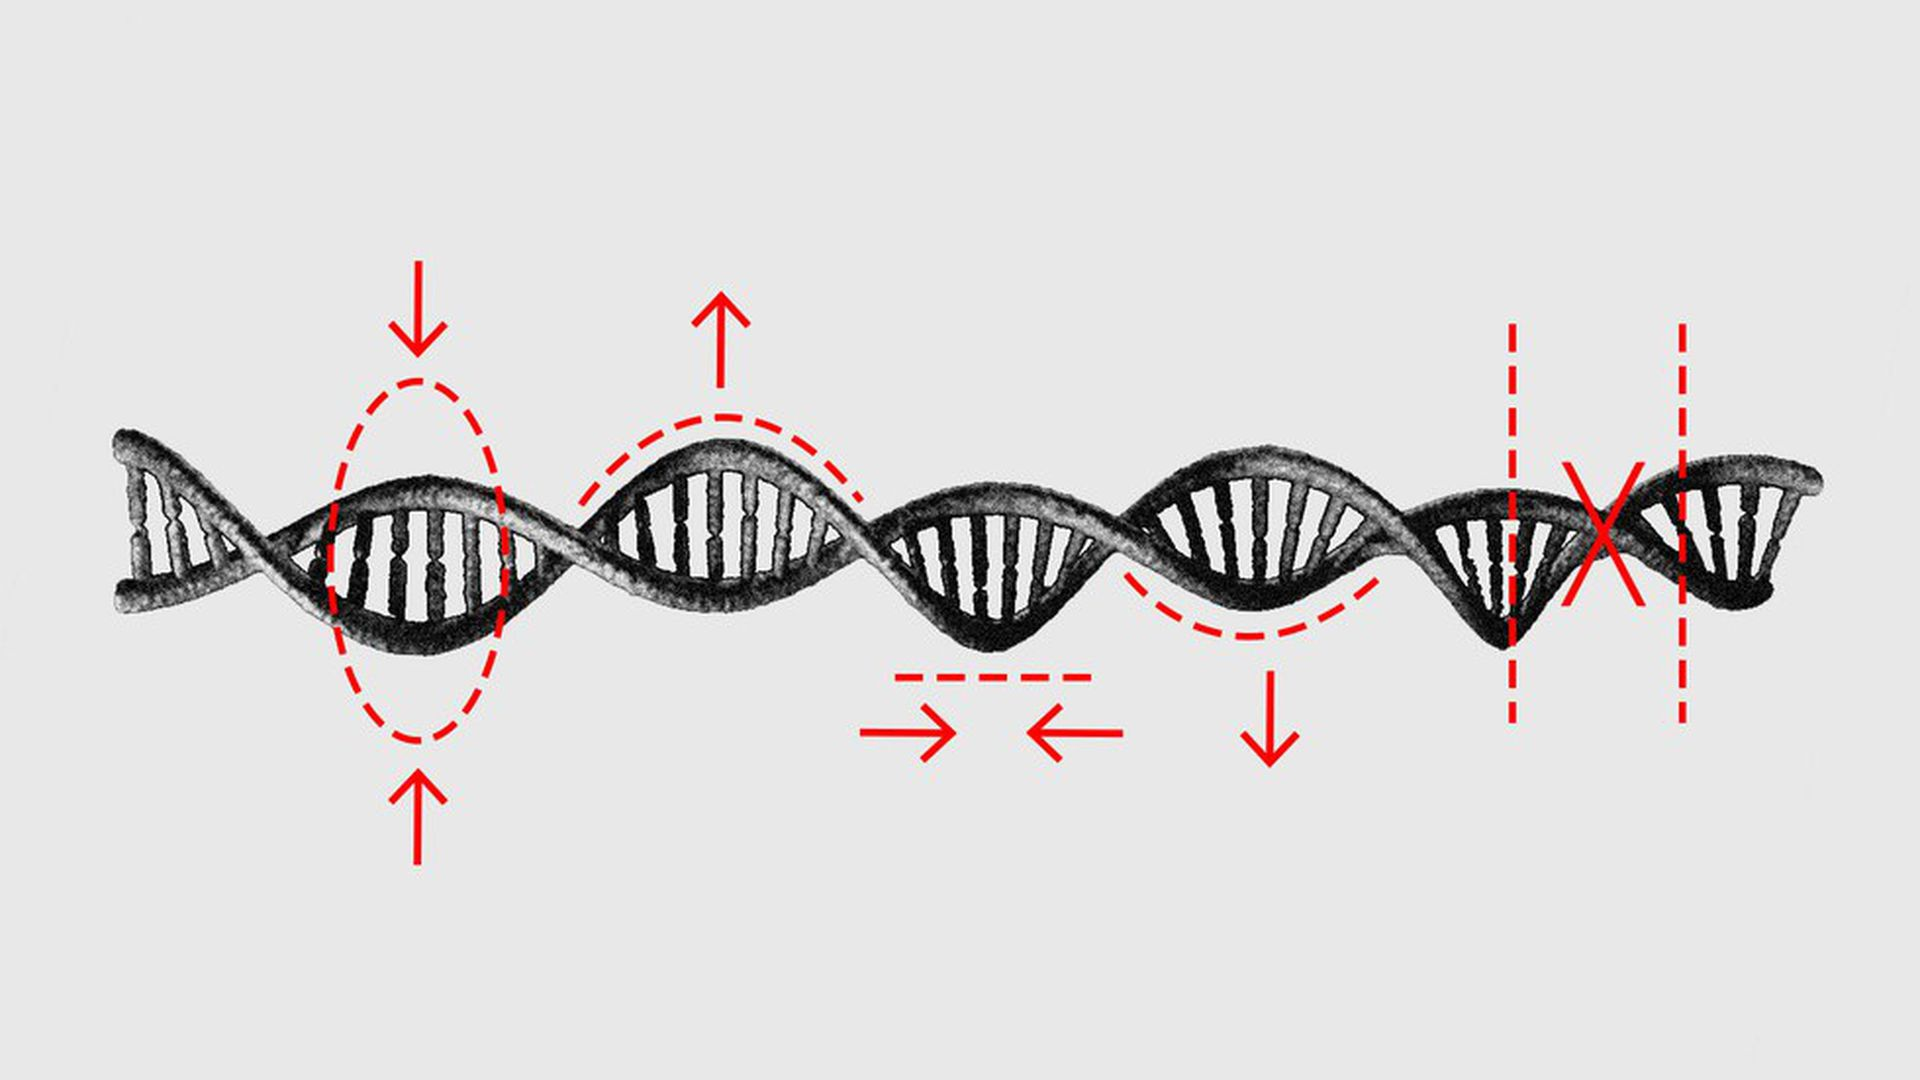 Cancer Gene Twice As Likely To Be >> Promising Disease Treatment Method Crispr Could Cause Cancer